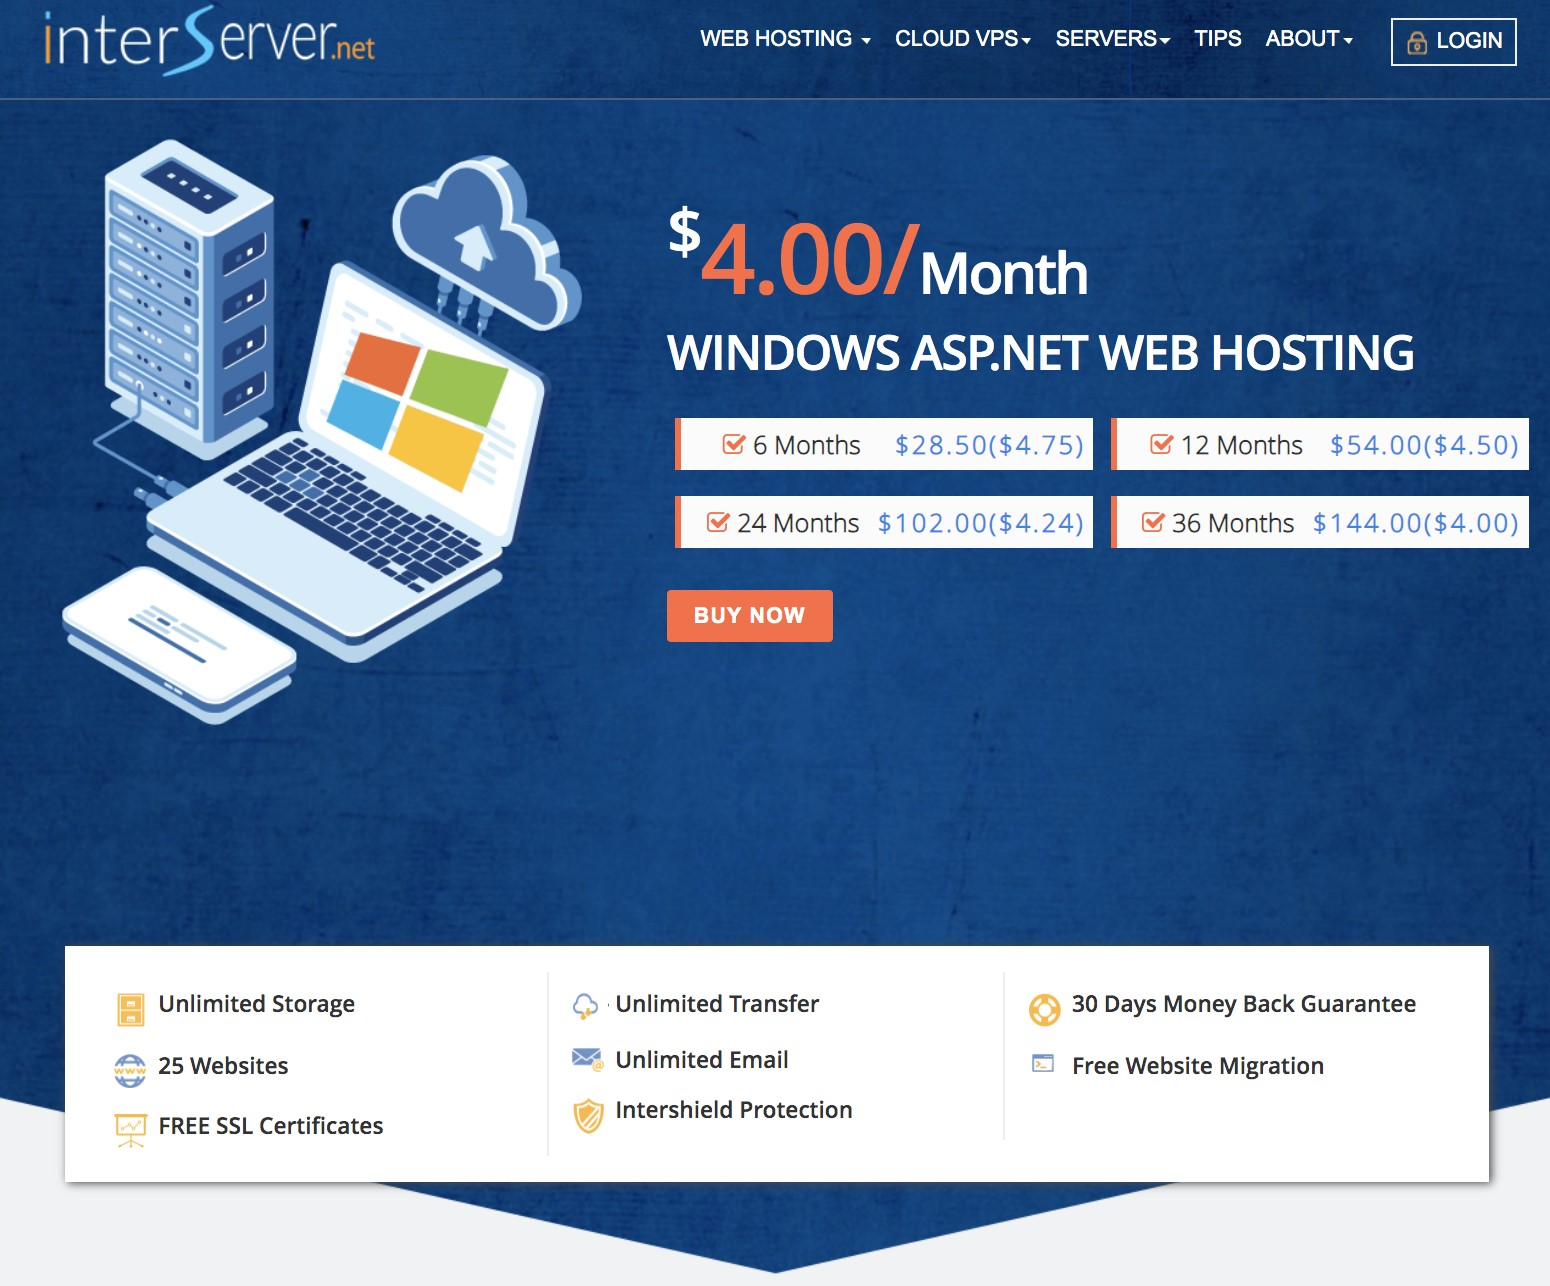 InterServer Windows ASP Net Hosting